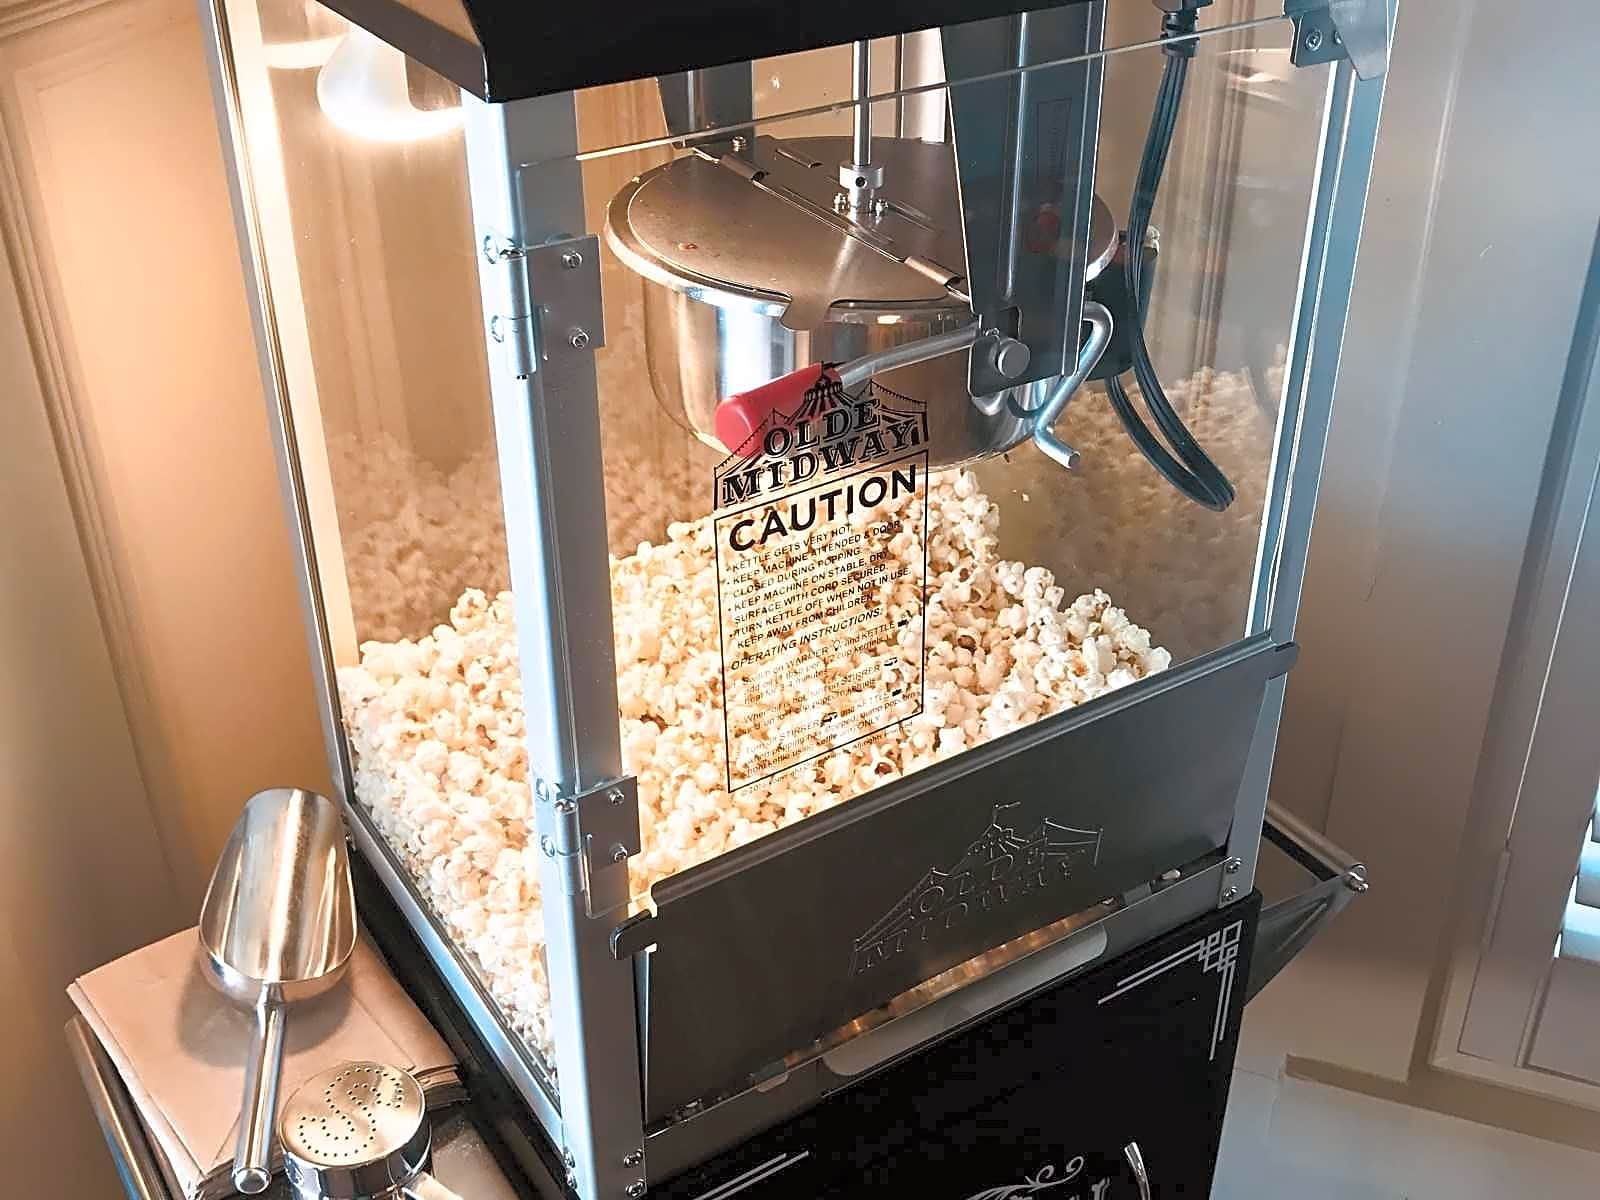 We're popping corn at Tradition today!  Come in and taste our fresh popcorn at The Club, from our NEW Olde Midway Vintage Style Popcorn Machine!